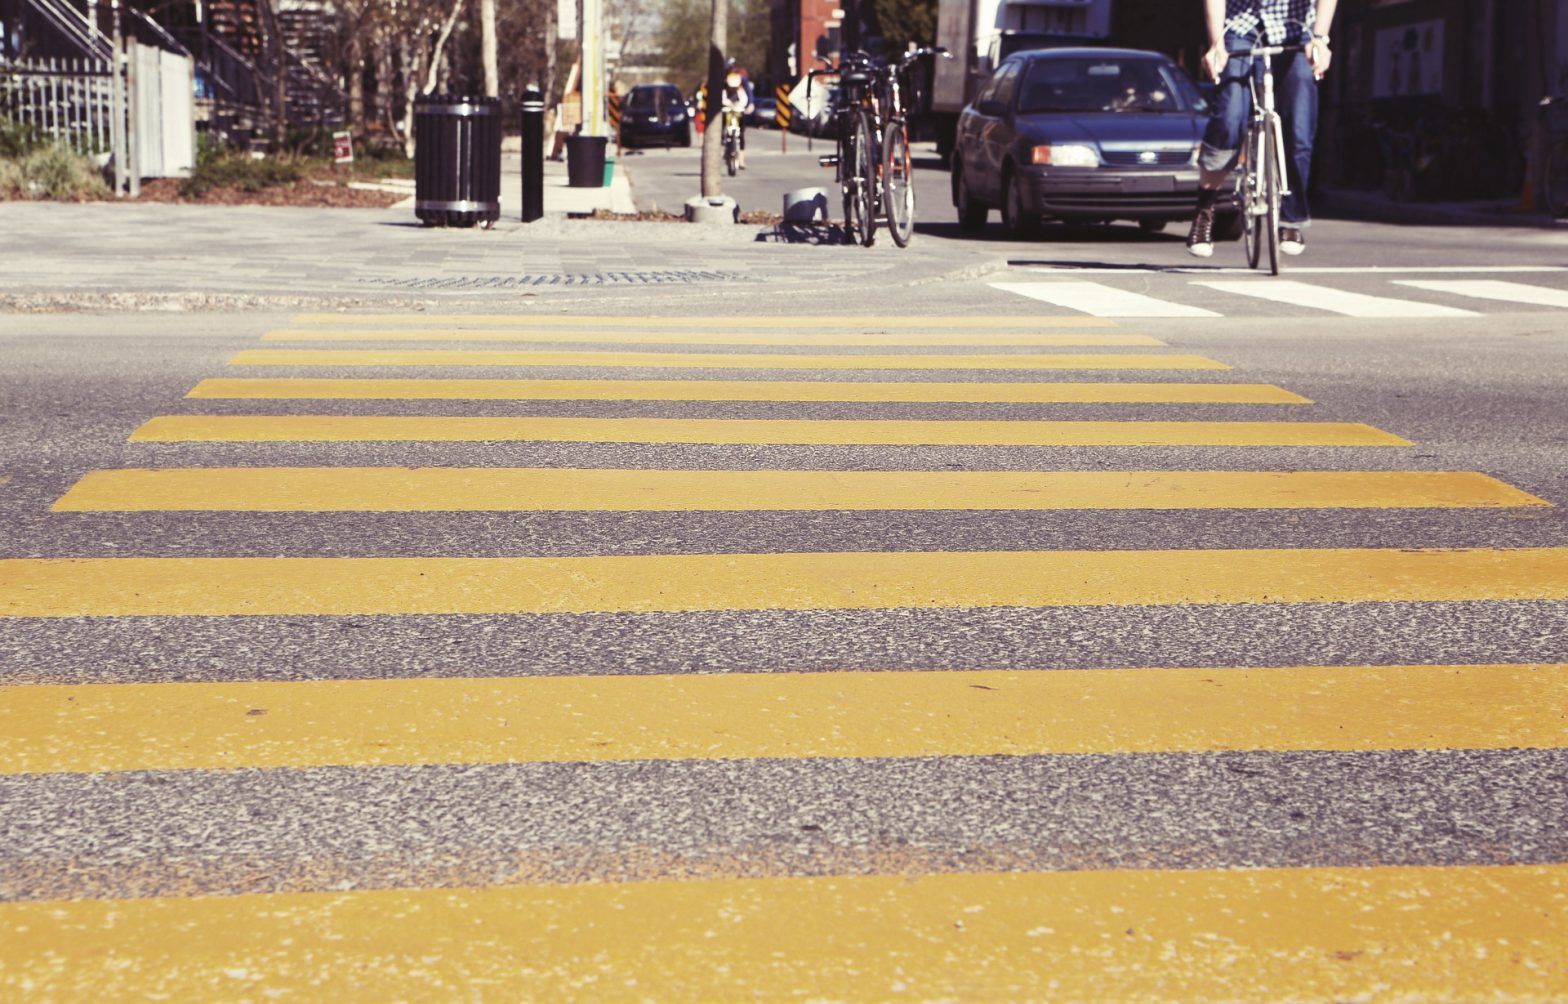 crosswalk-407023_1920-1568x1004.jpg